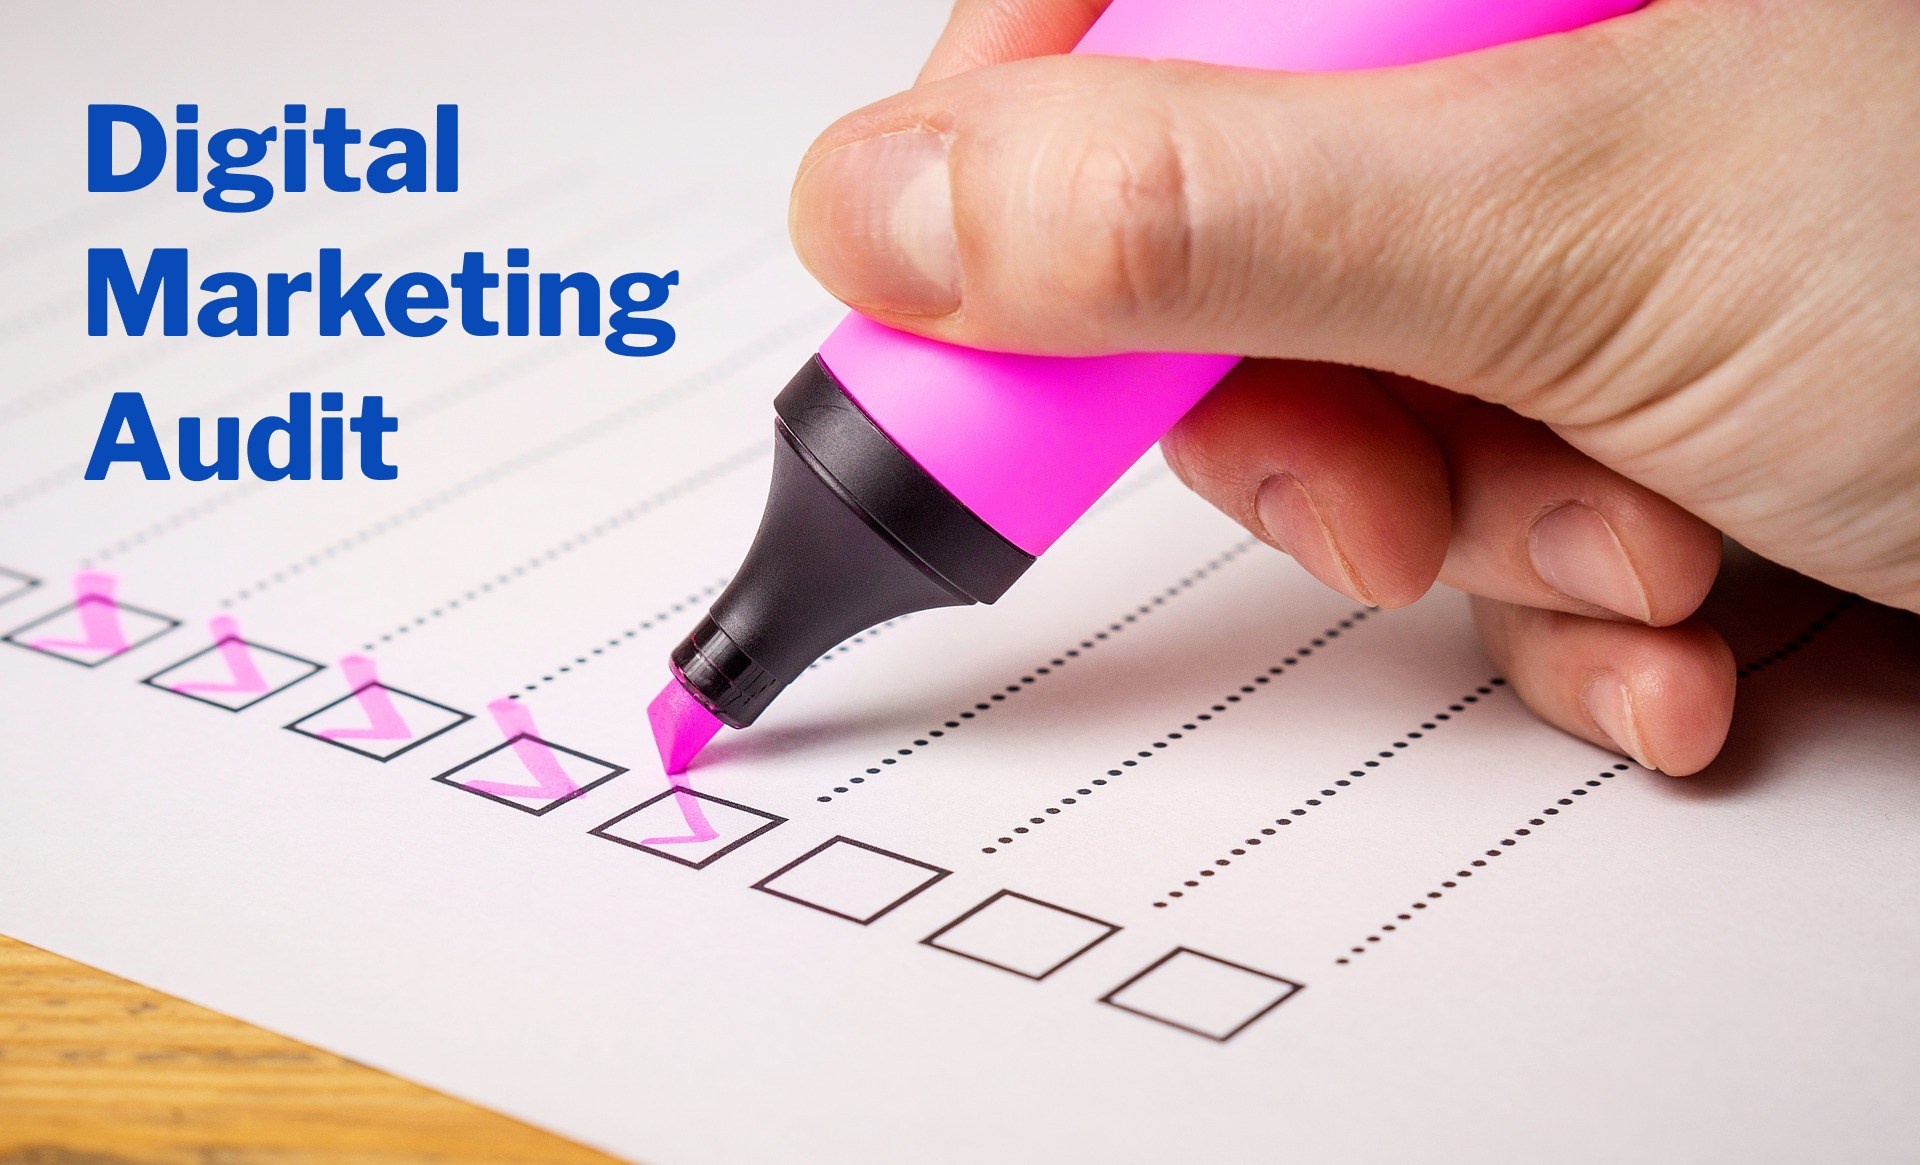 How to audit digital marketing efforts